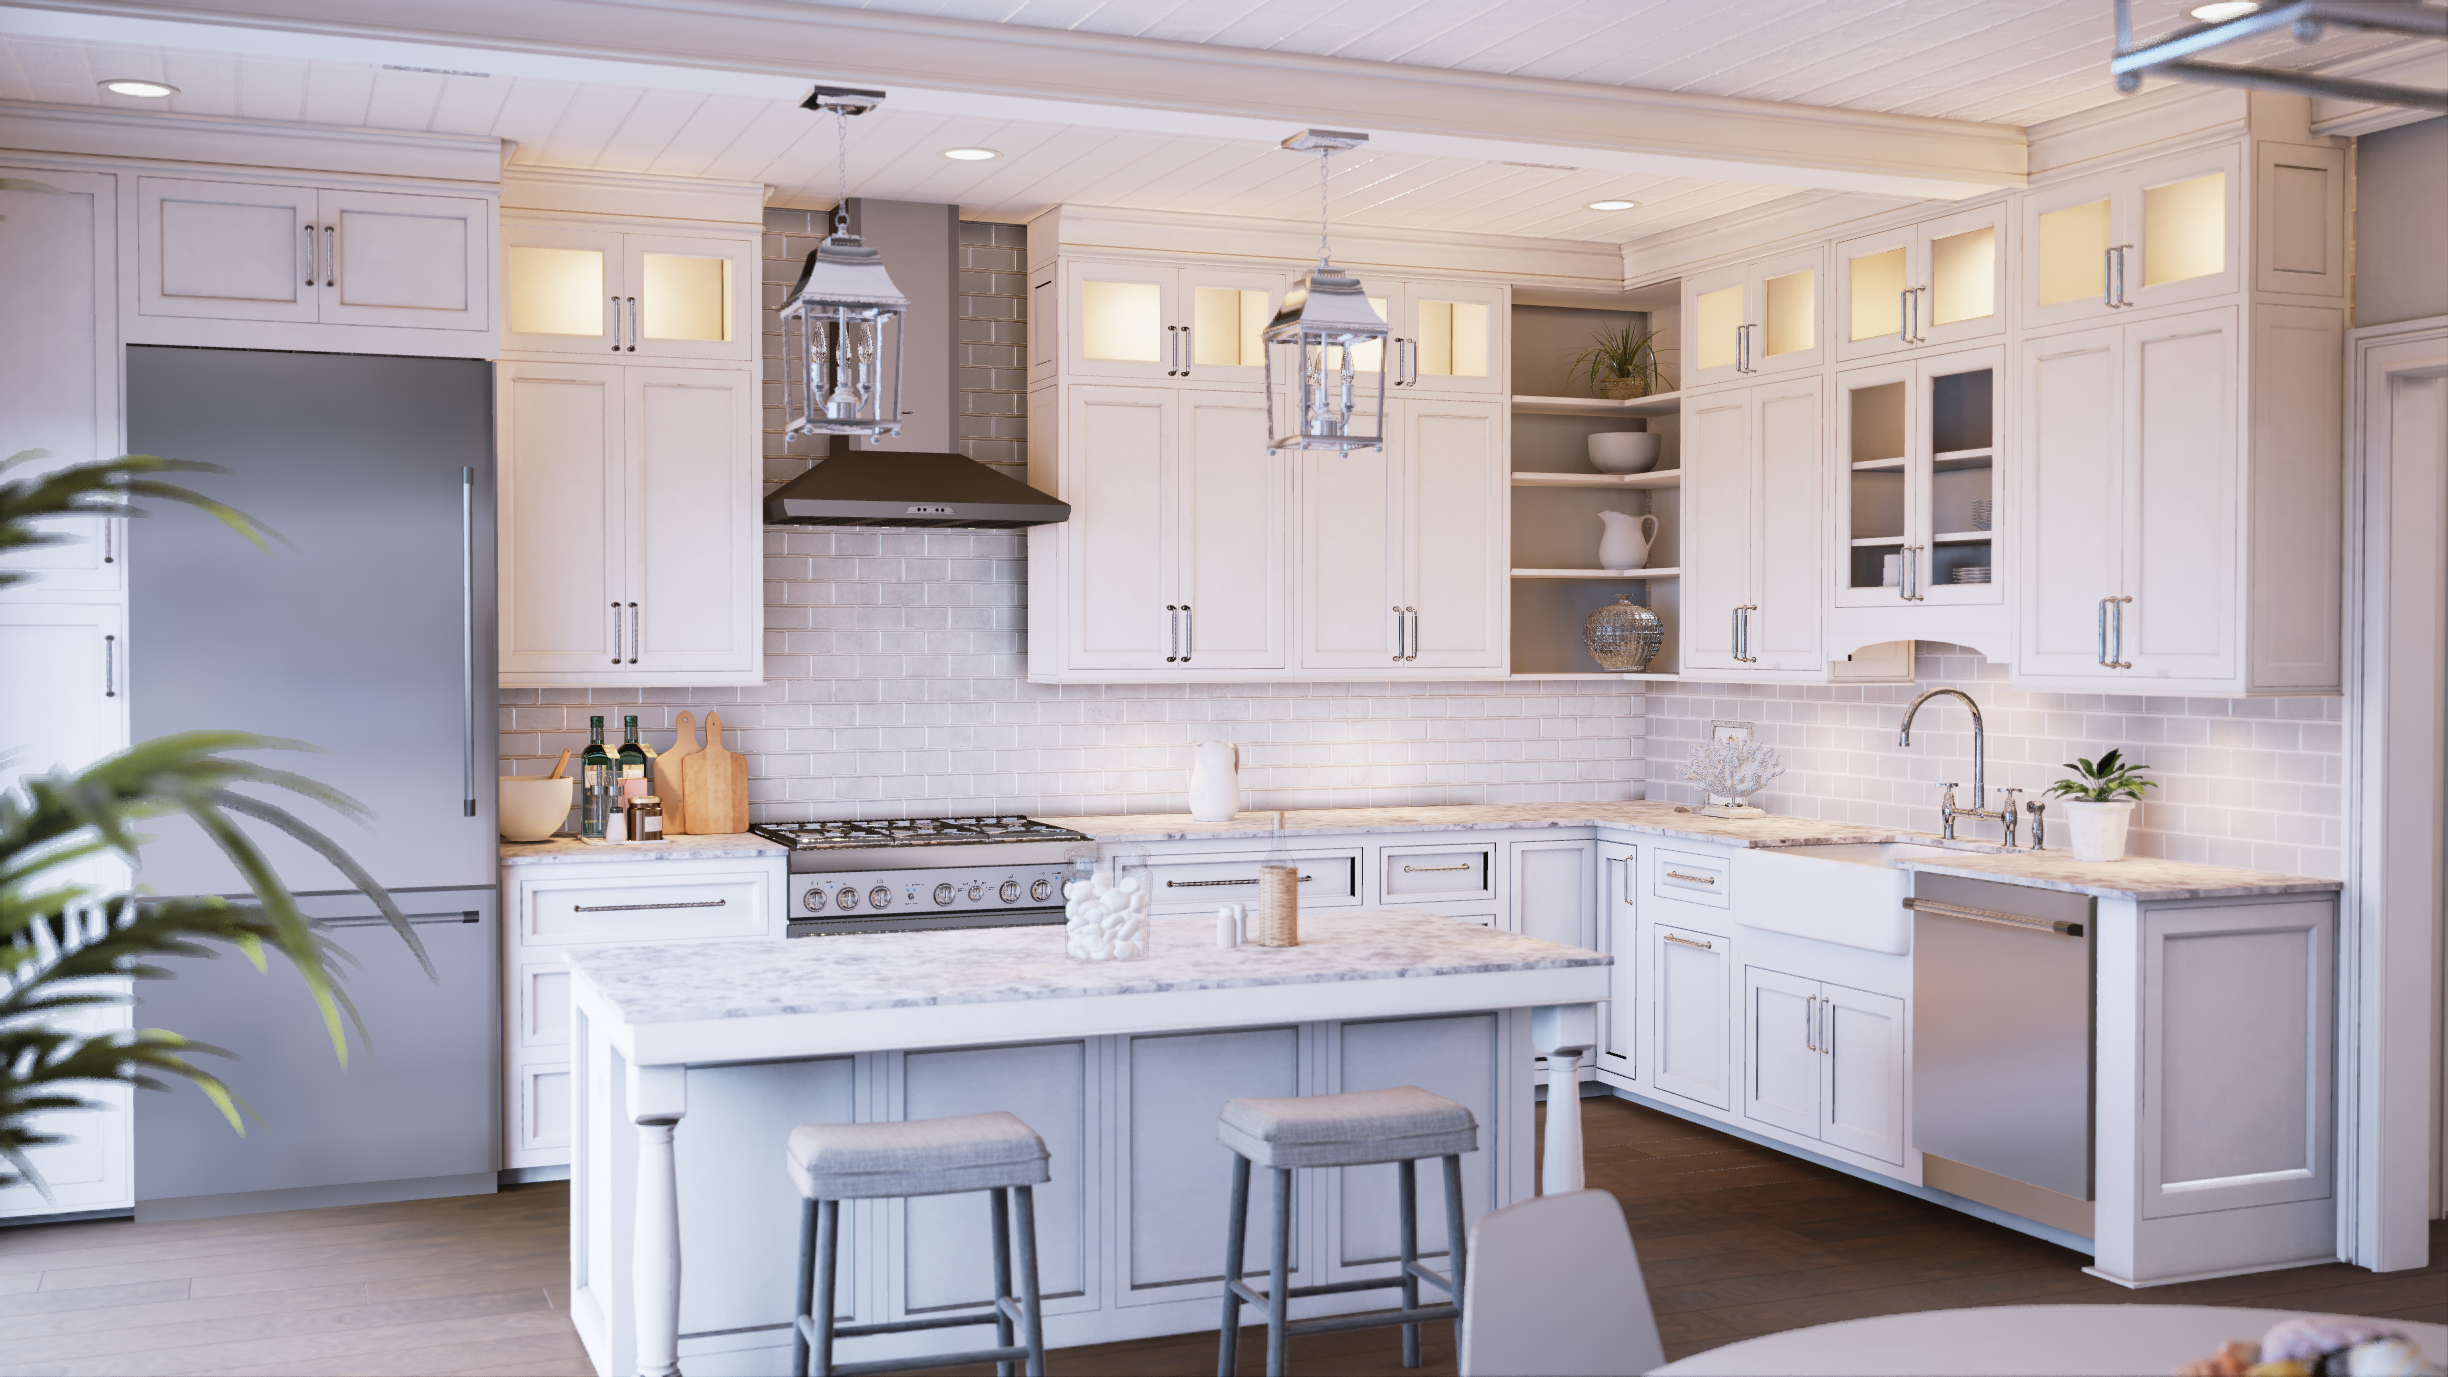 Beatiful Kitchen rendering by Mythic VR